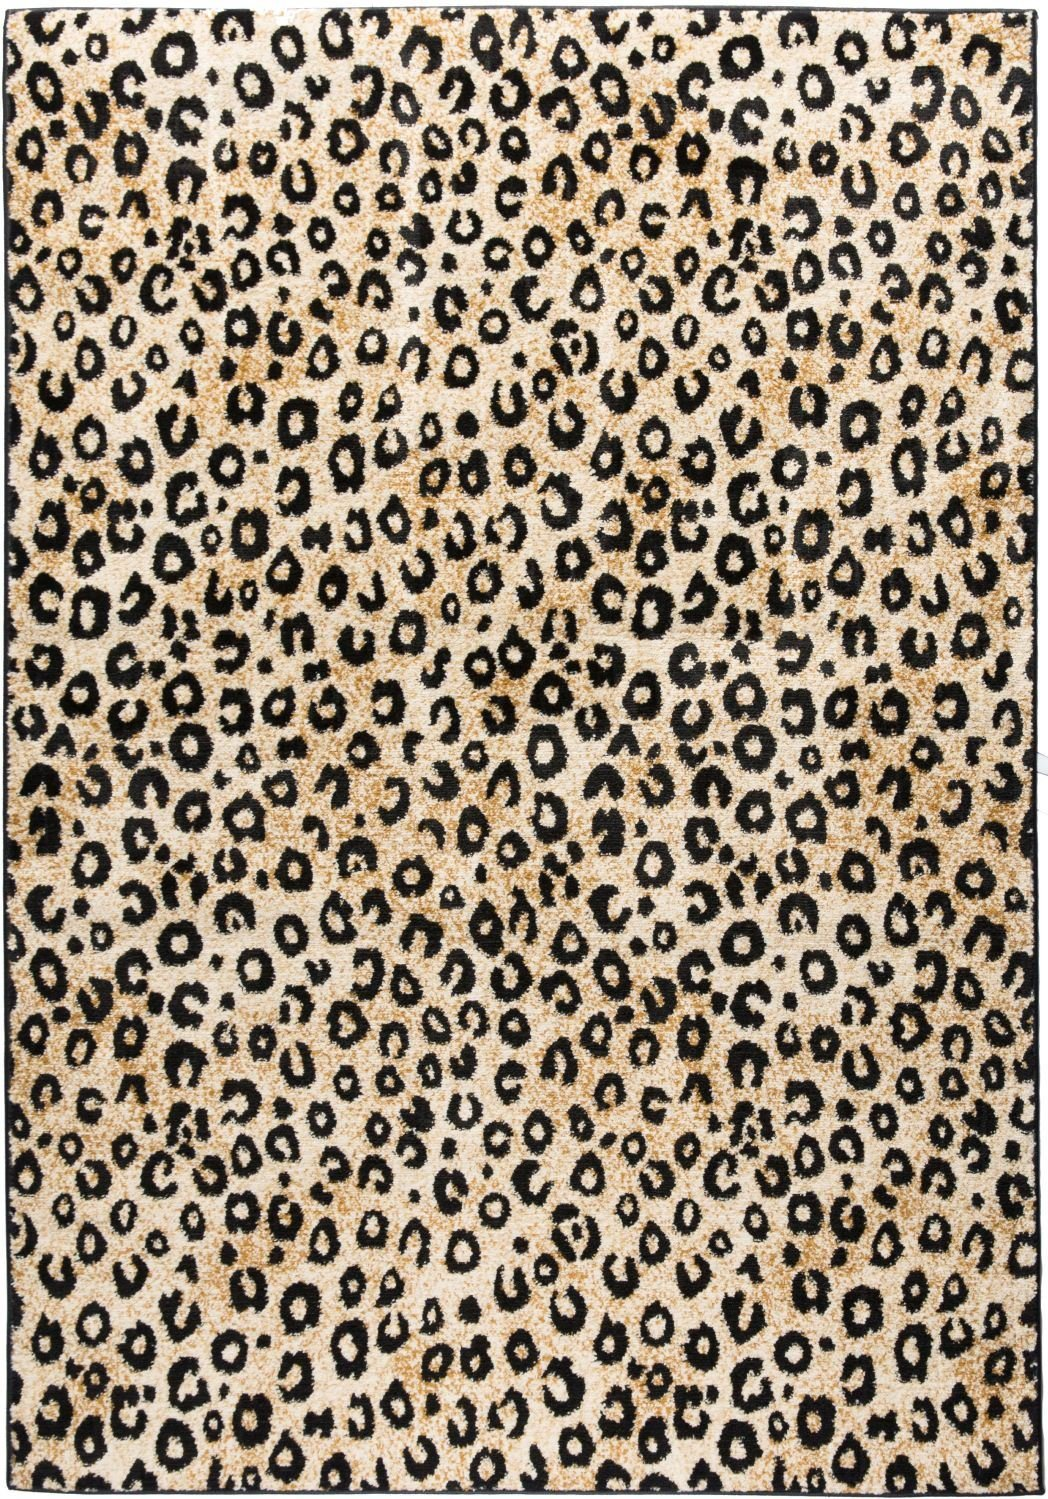 Well Woven Dulcet Leopard Black Ivory Animal Print Area Rug 2' X 7'3'' Runner by Well Woven